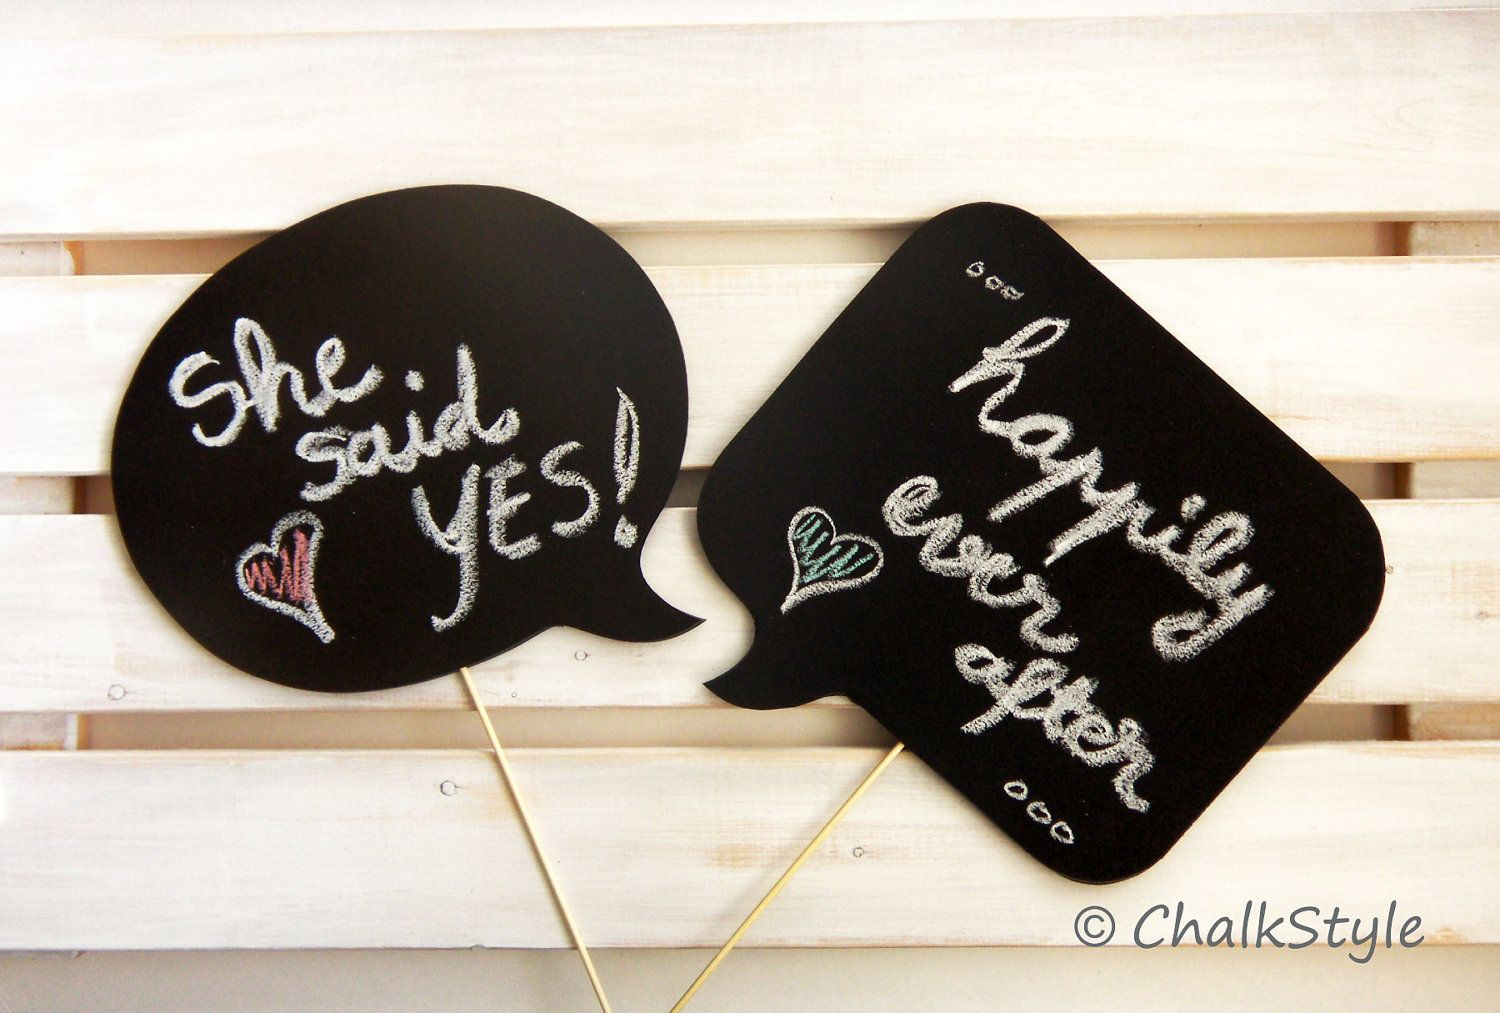 2 Large Chalkboard Sch Bubbles On A Stick Sided Chalkboards Photo Booth Props For Wedding Photos